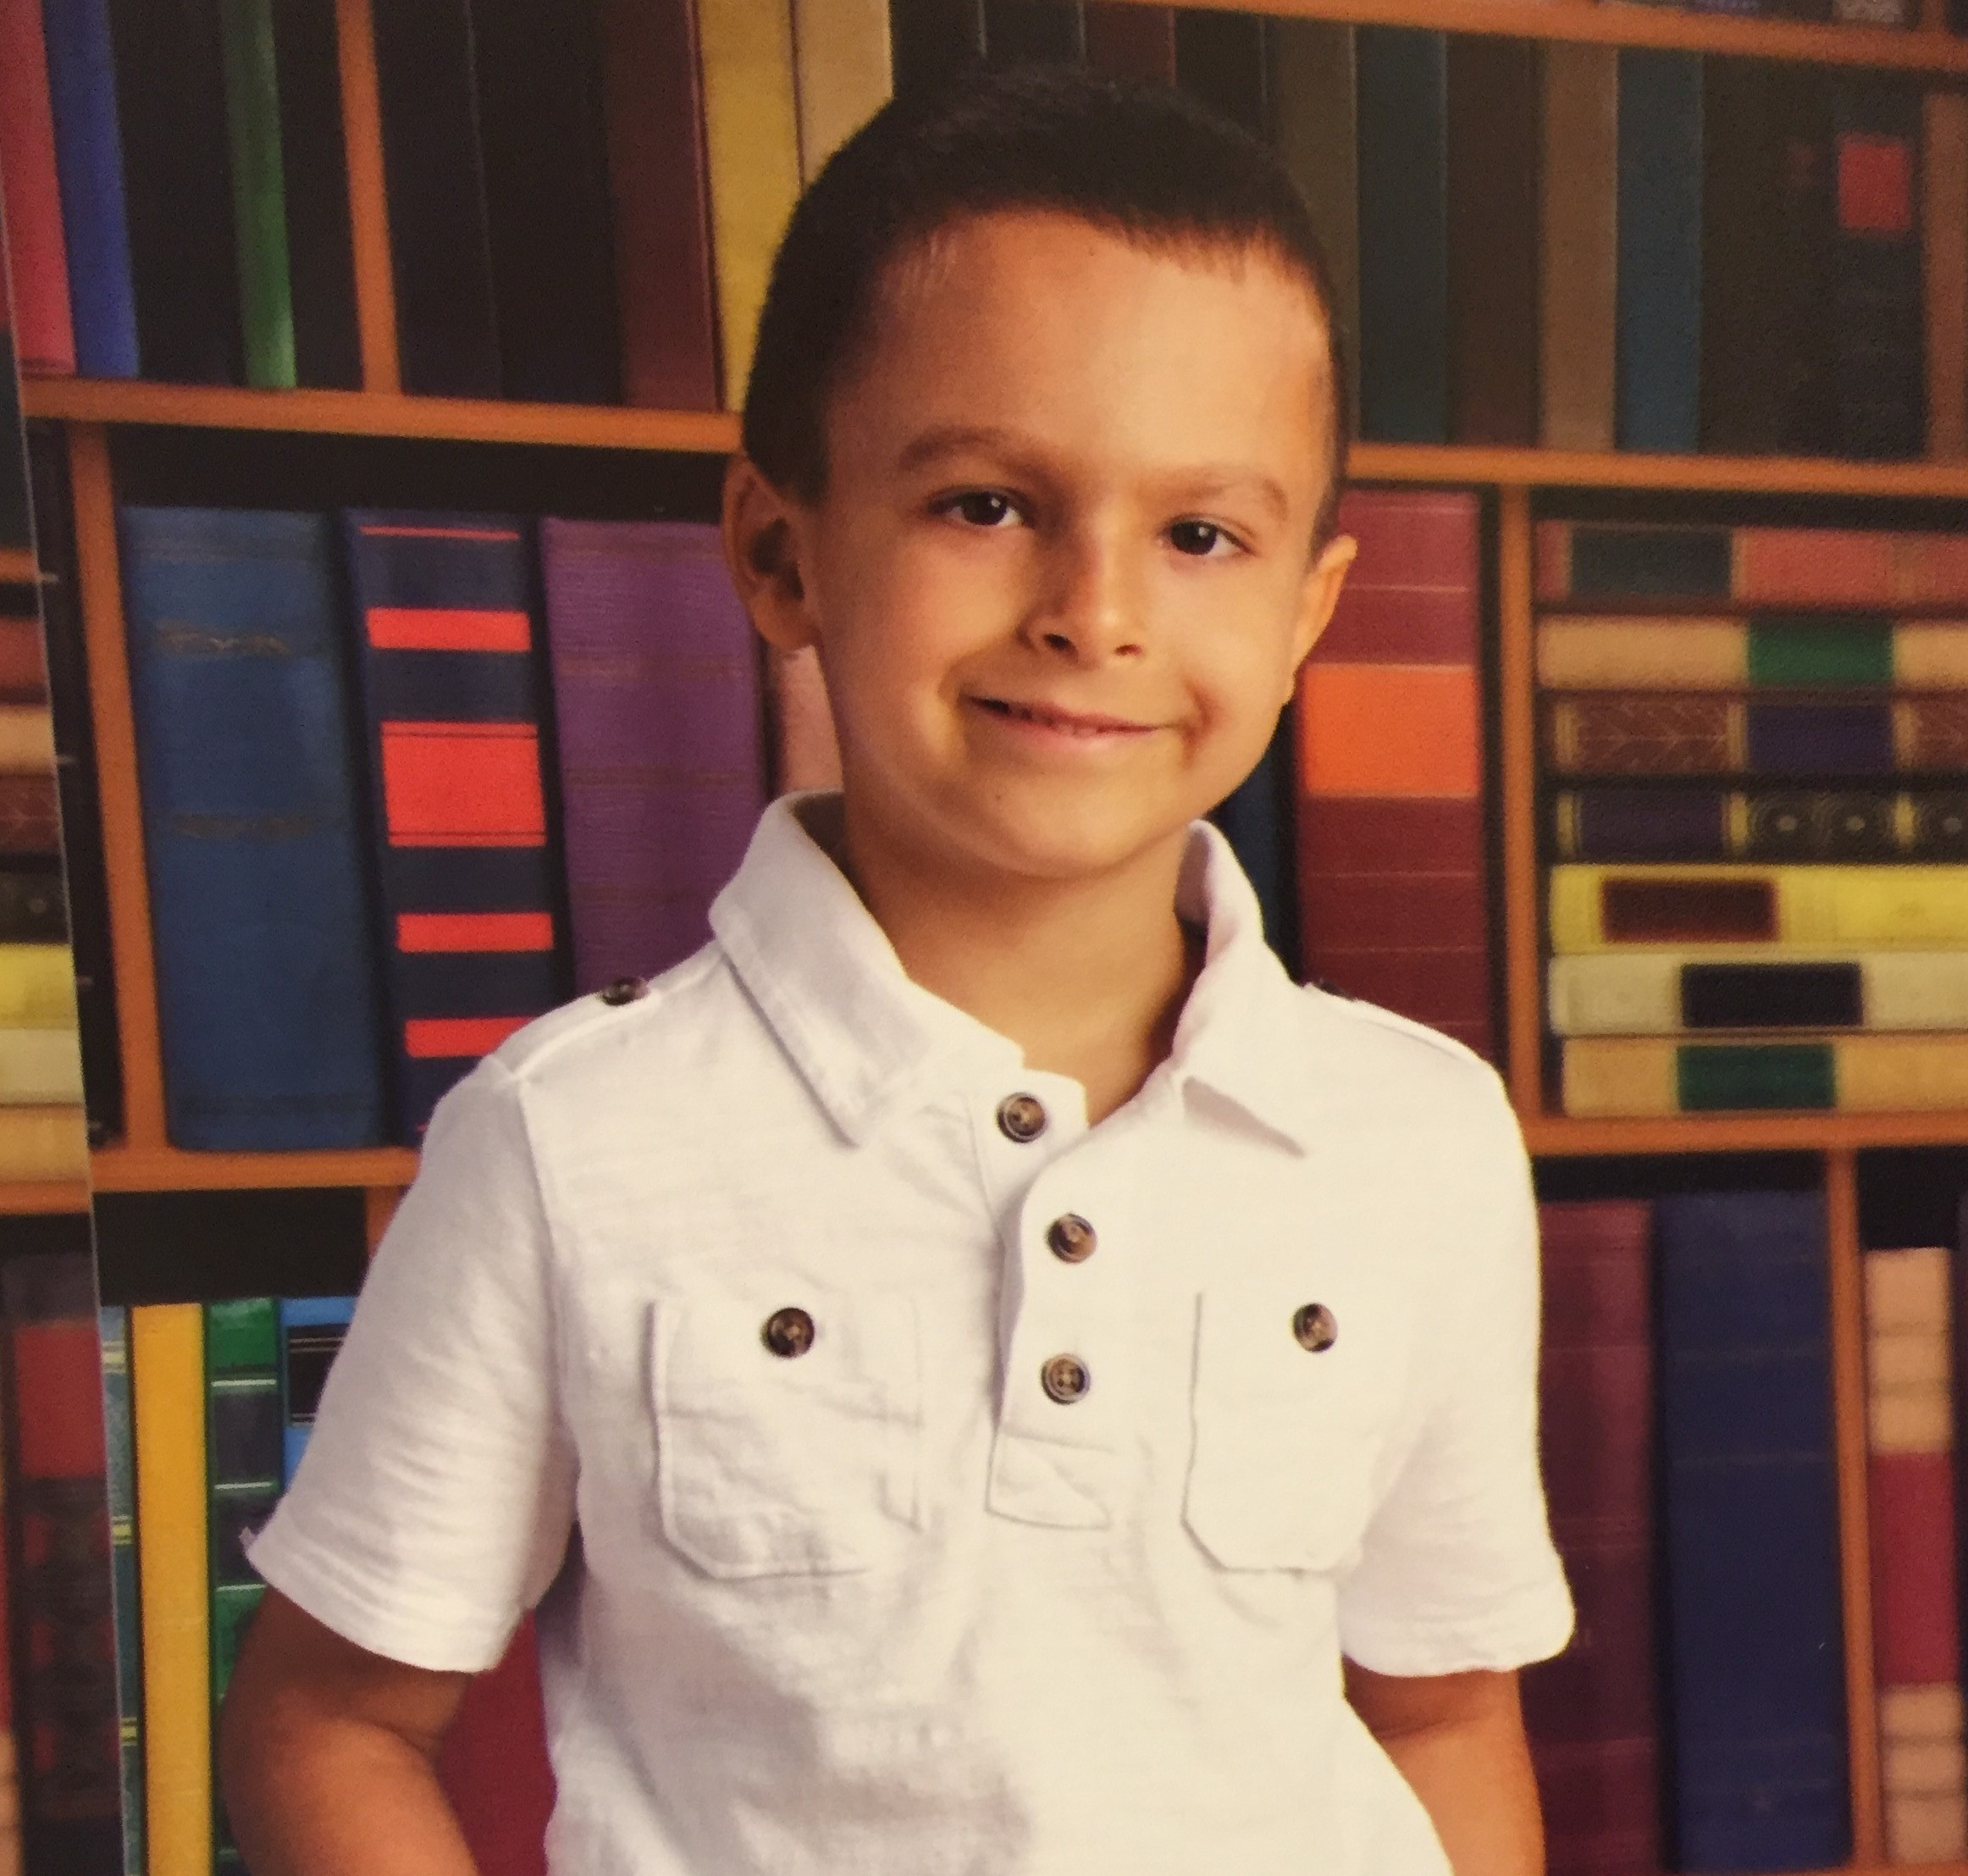 Annual blood drive to include search for bone marrow donor for Dyker boy